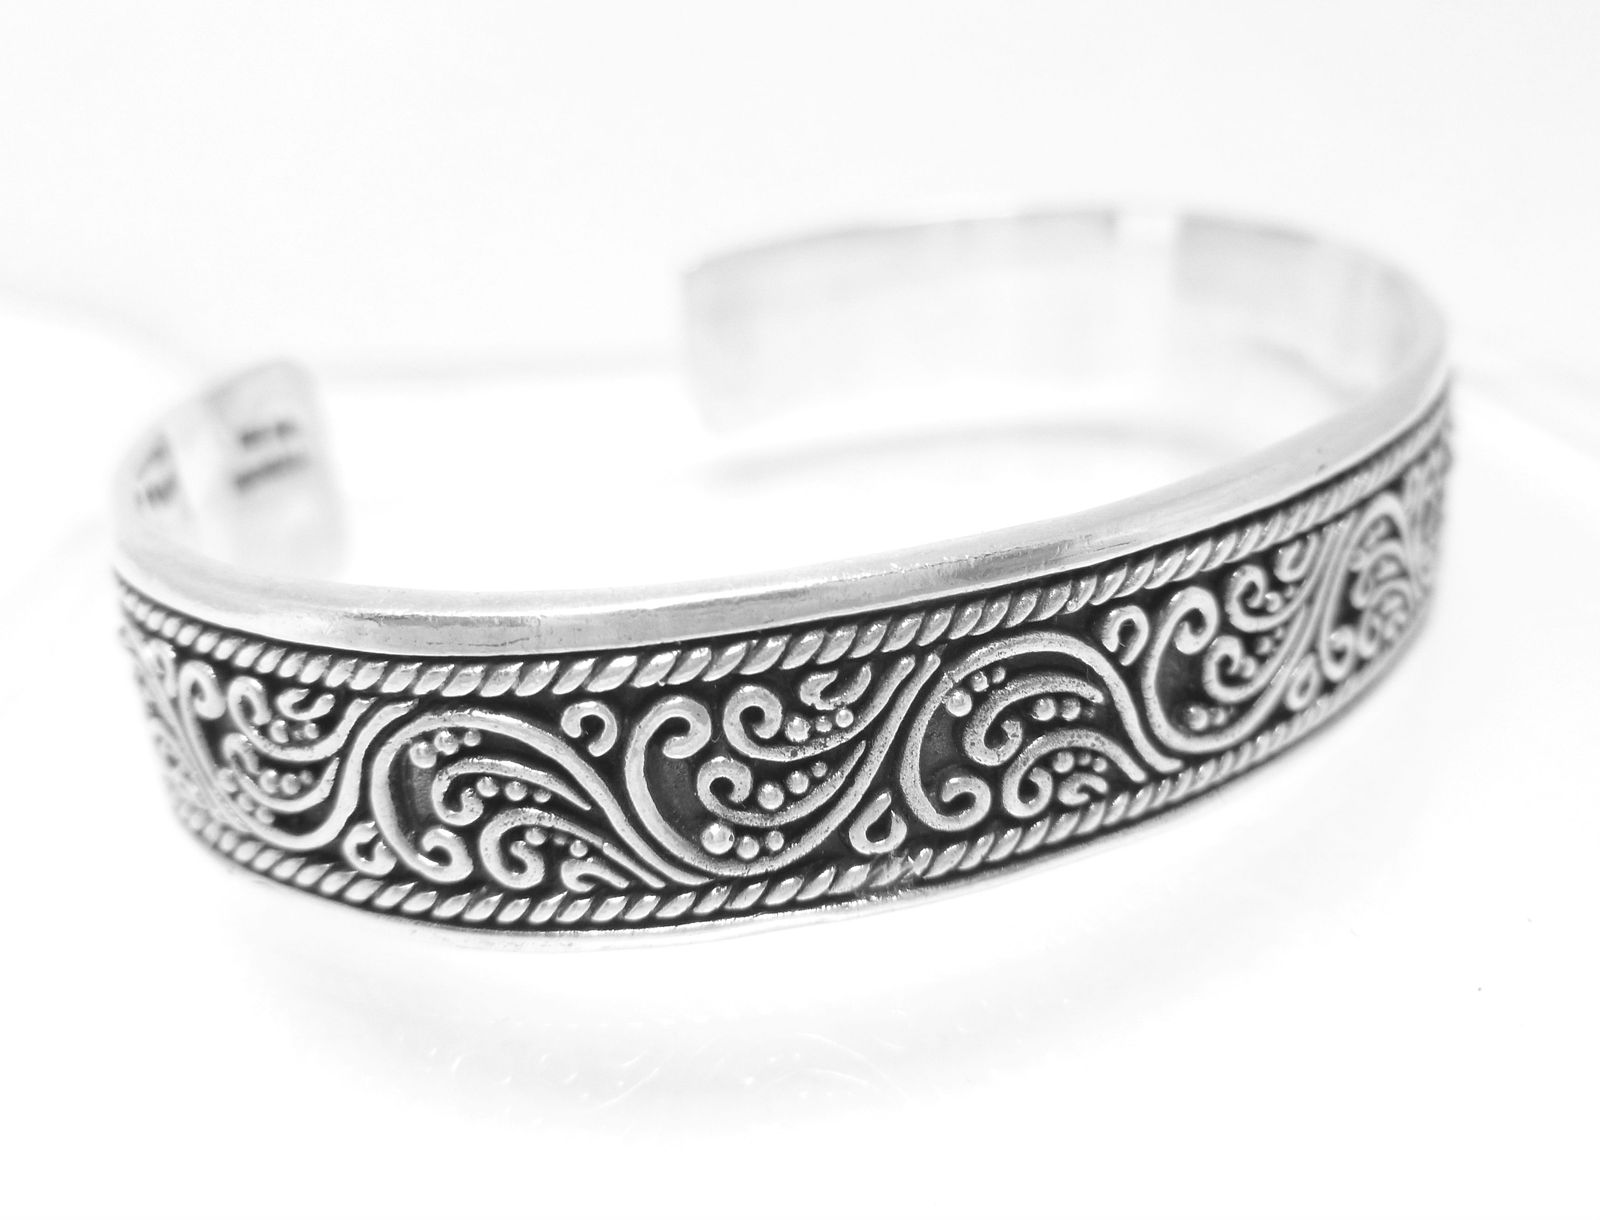 Primary image for Artisan Crafted Sterling Silver Oxidized Filigree Cuff Bracelet 7""